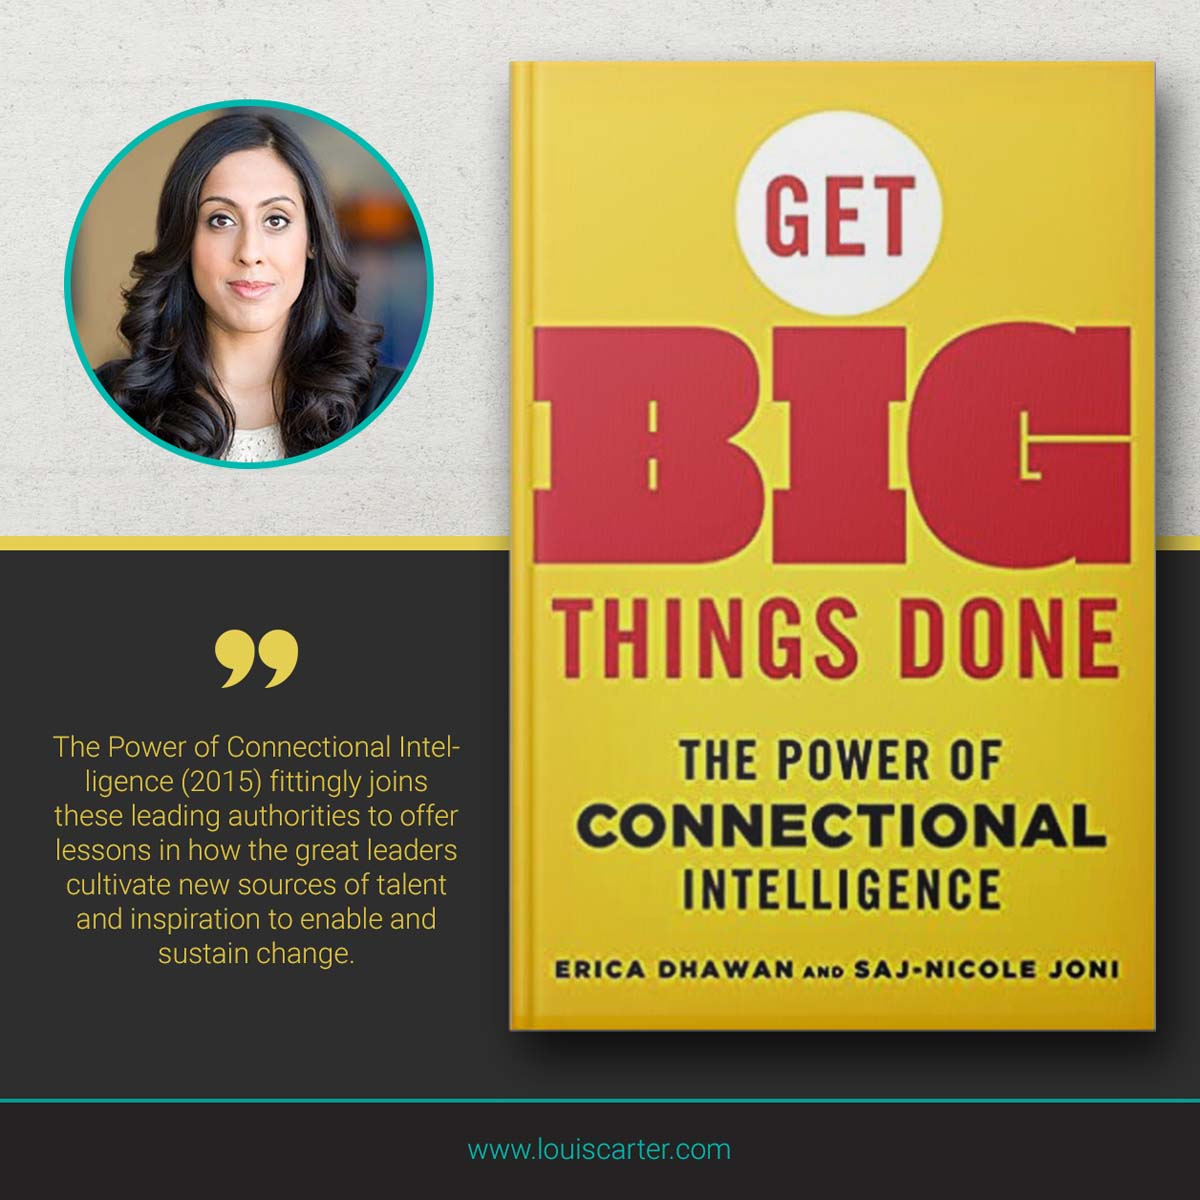 Image of Get Big Things Done by Erica Dhawan and Saj-Nicole A Jon Leadership book